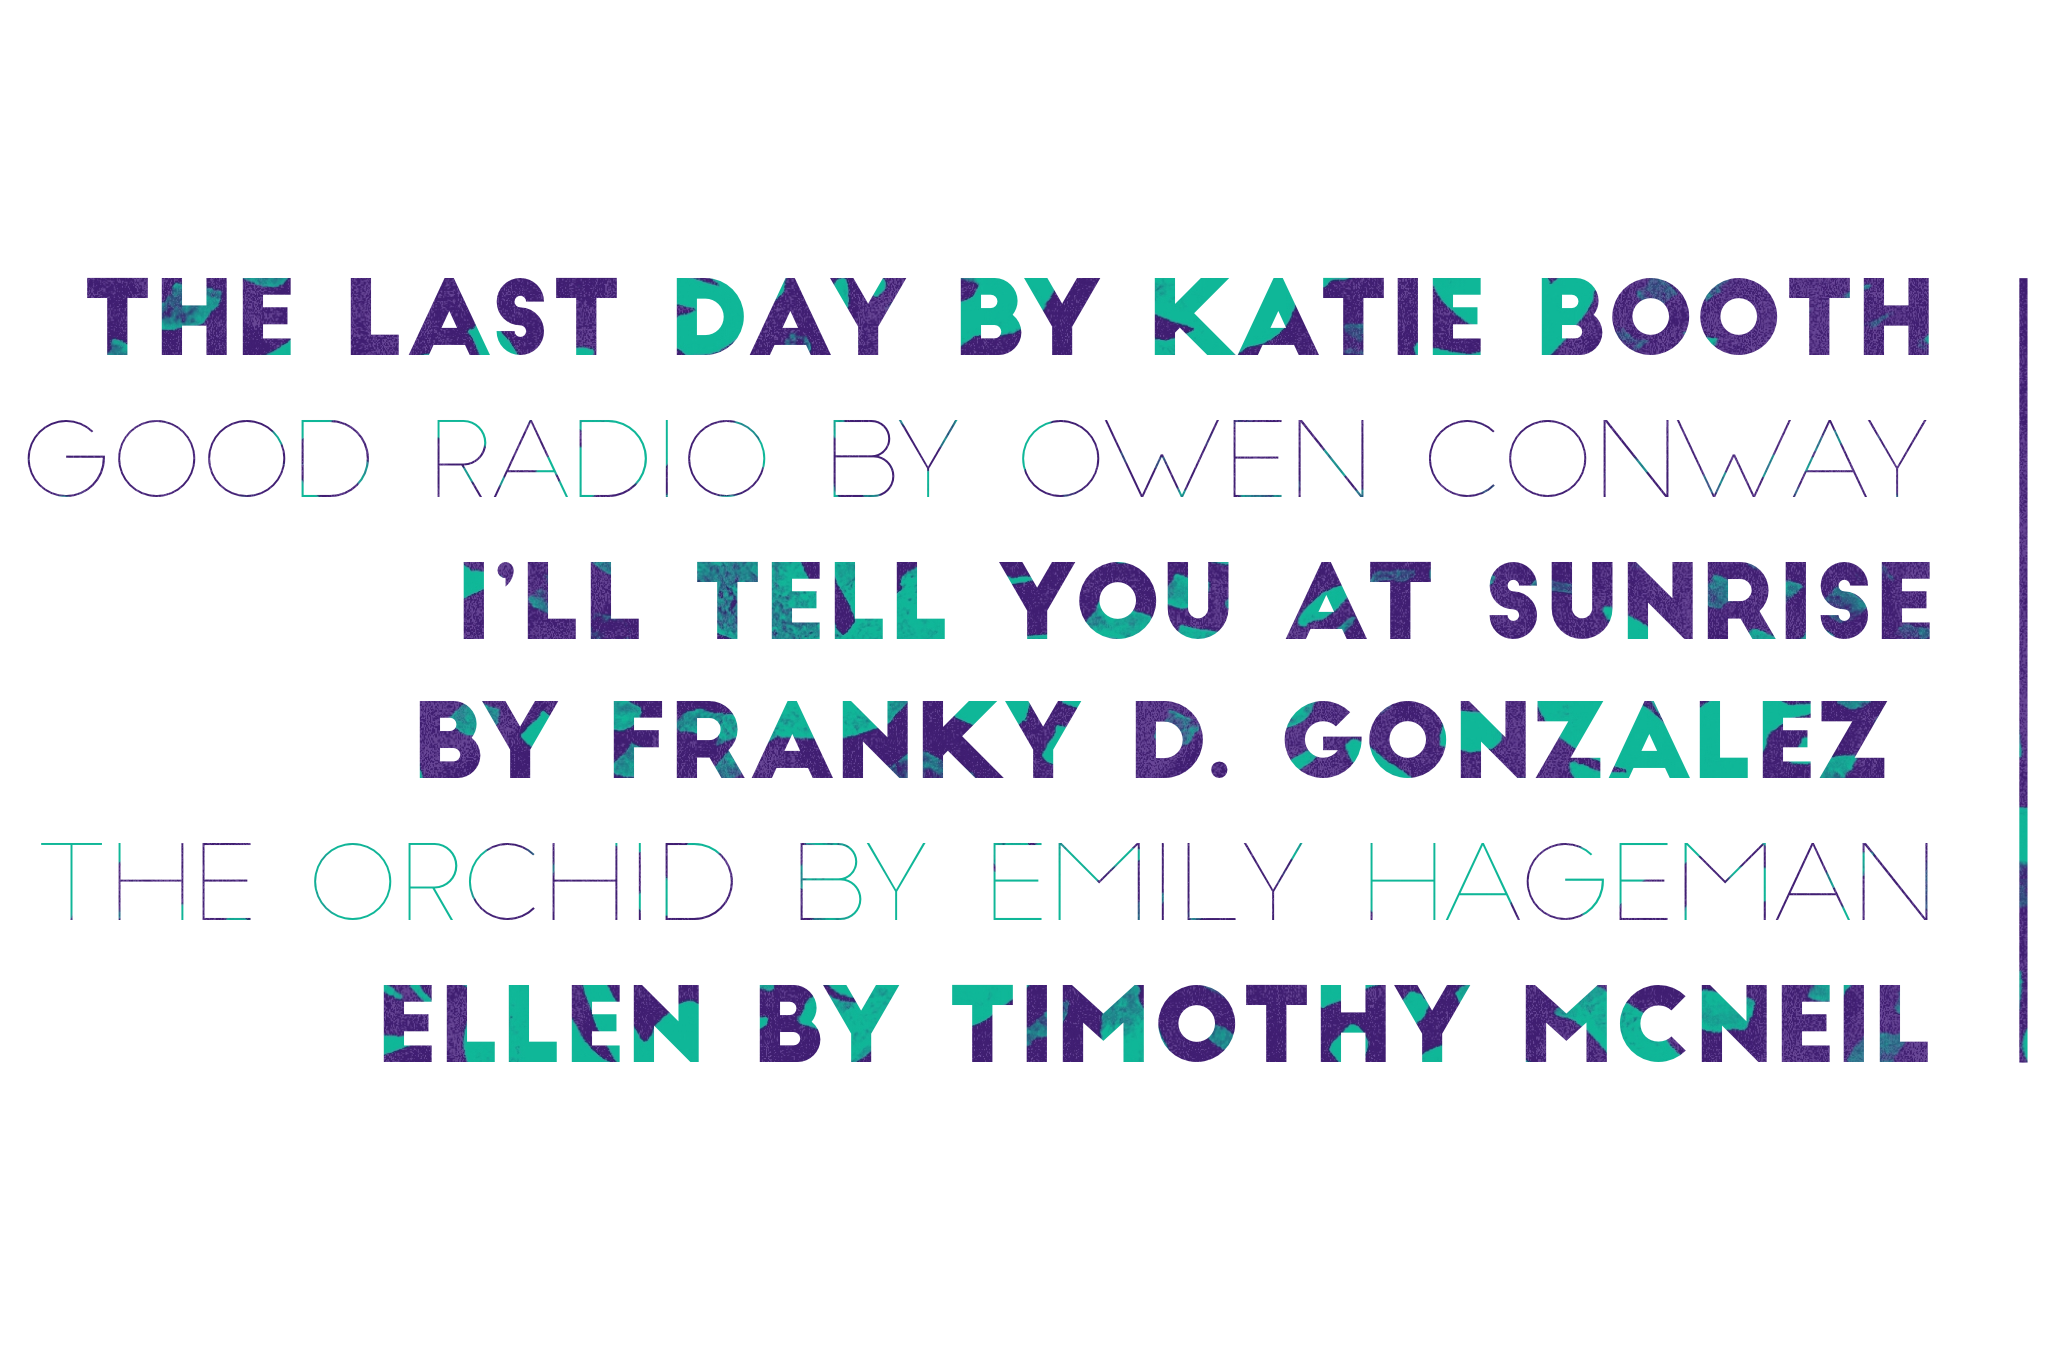 Congrats to Katie Booth, Owen Conway, Franky D. Gonzalez, Emily Hageman, and Timothy McNeil!